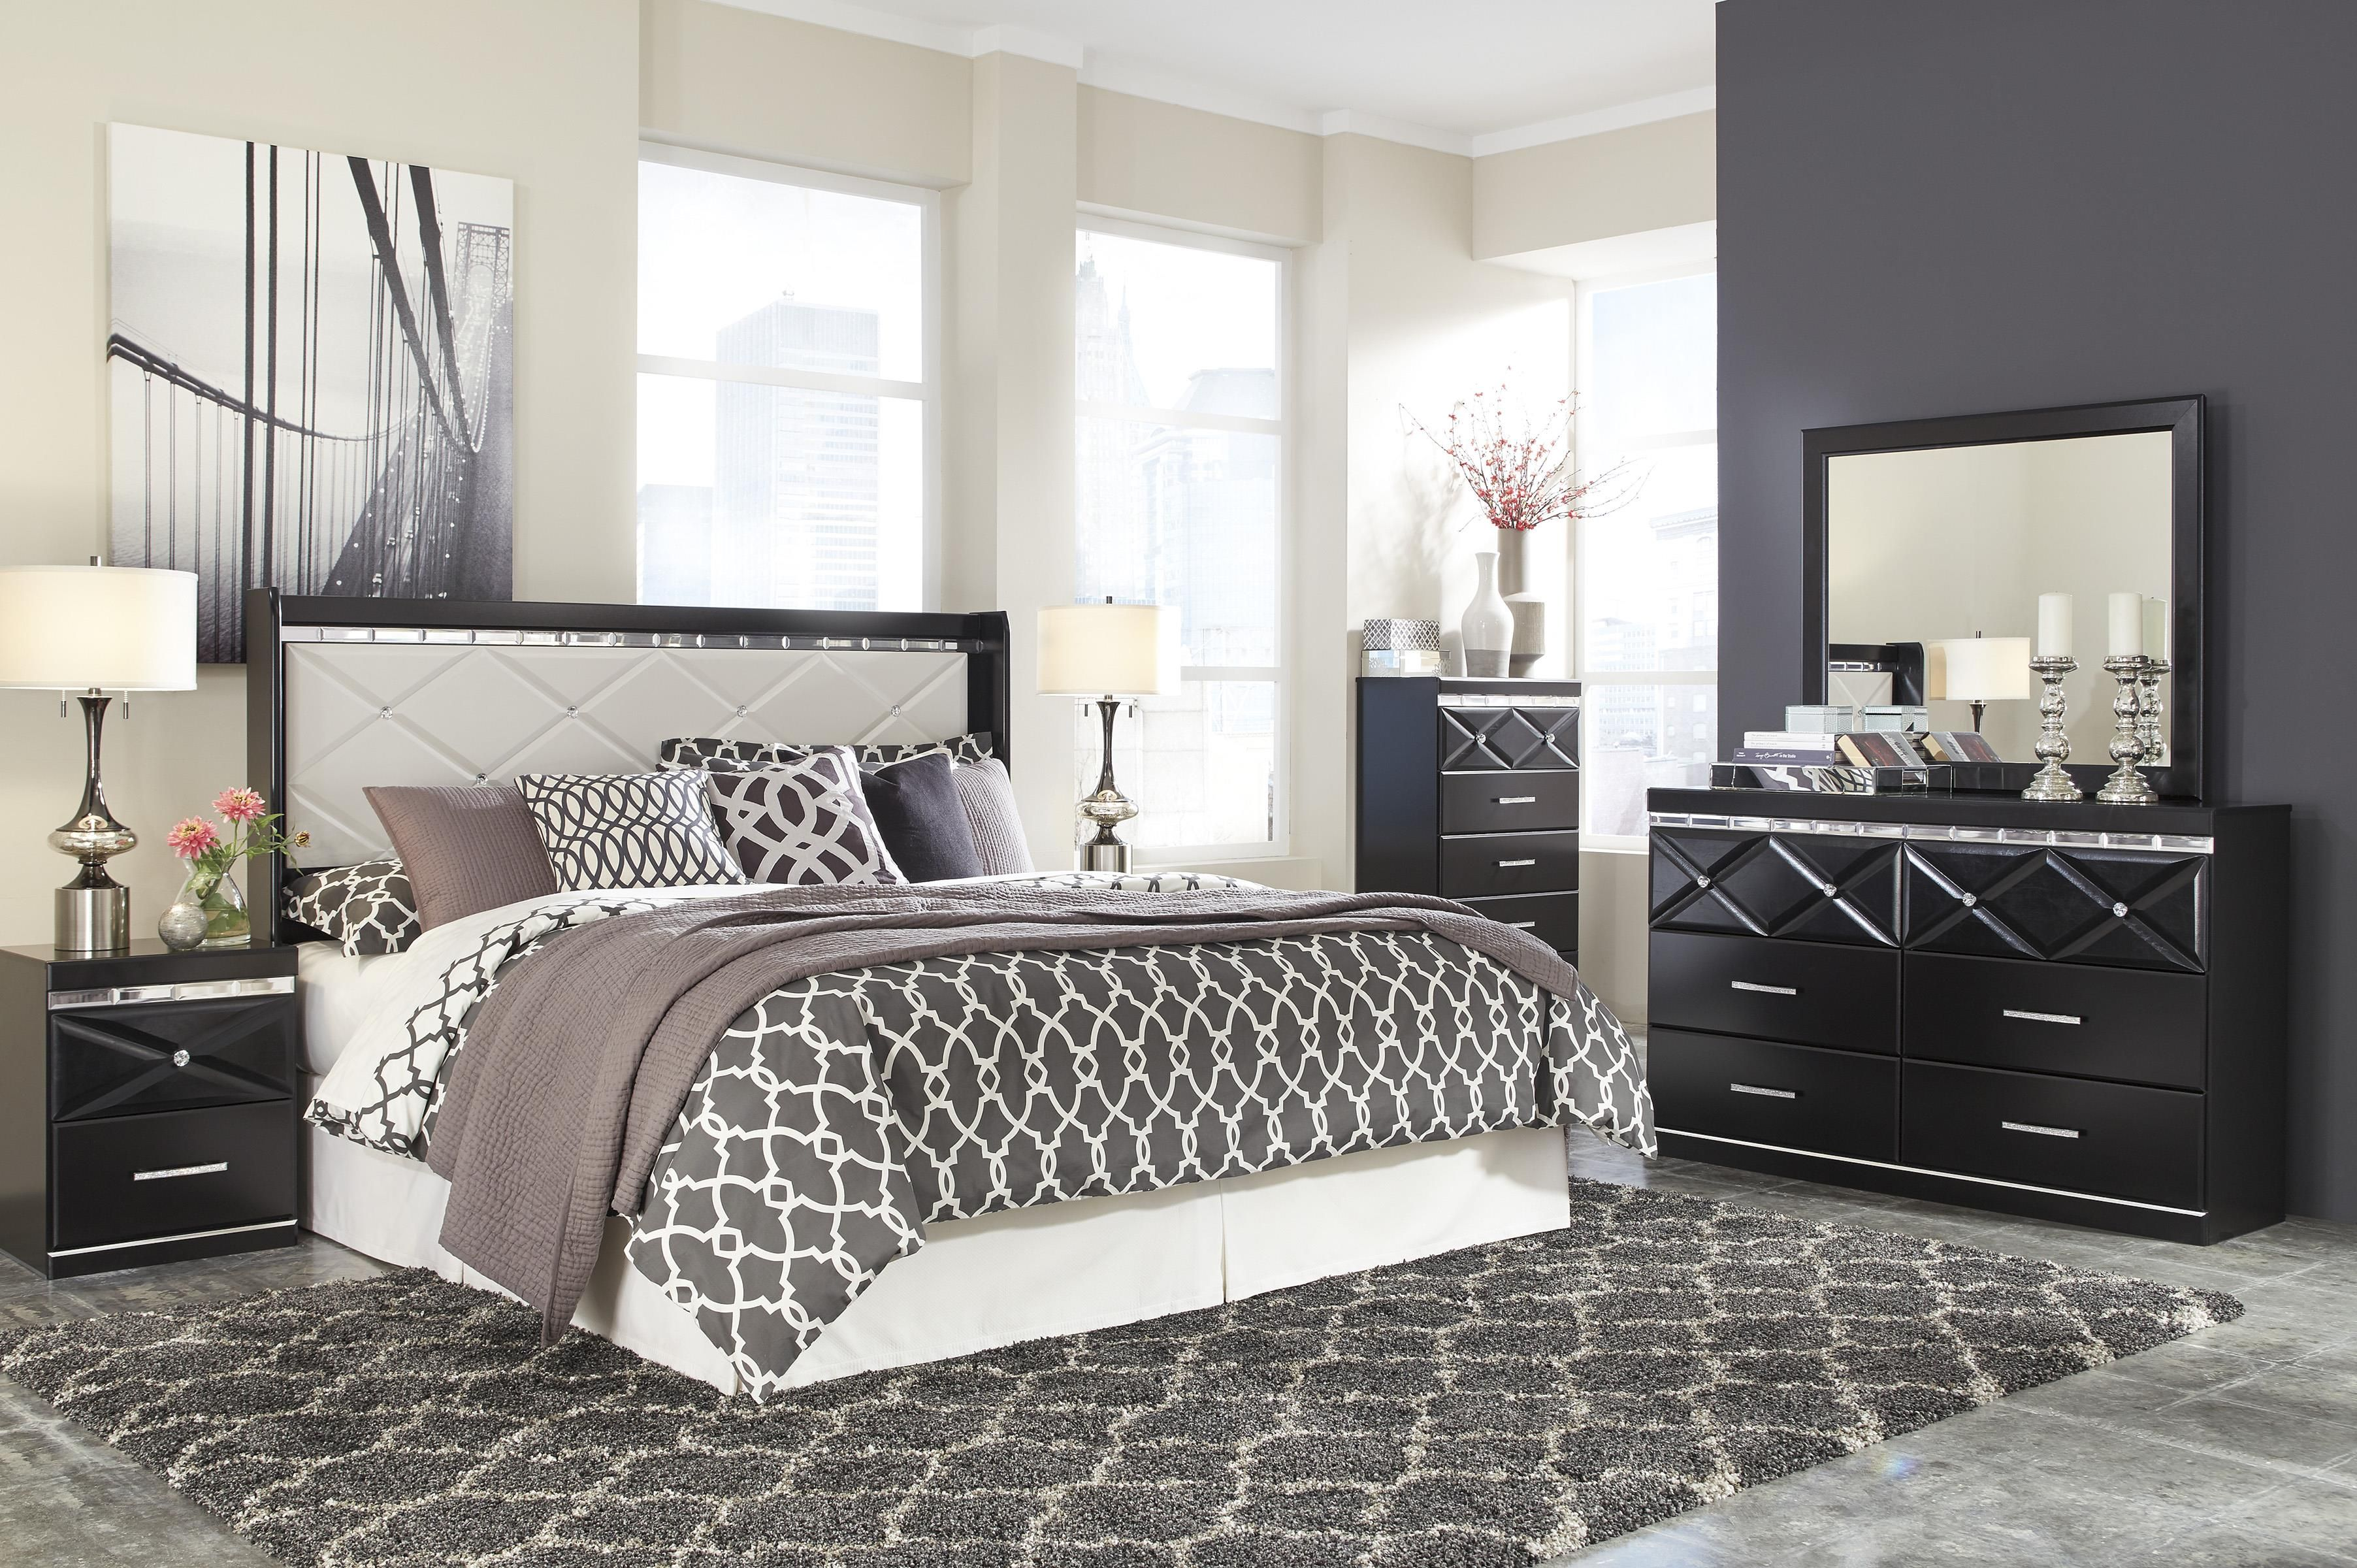 Signature Design by Ashley Fancee King Bedroom Group | Northeast ...